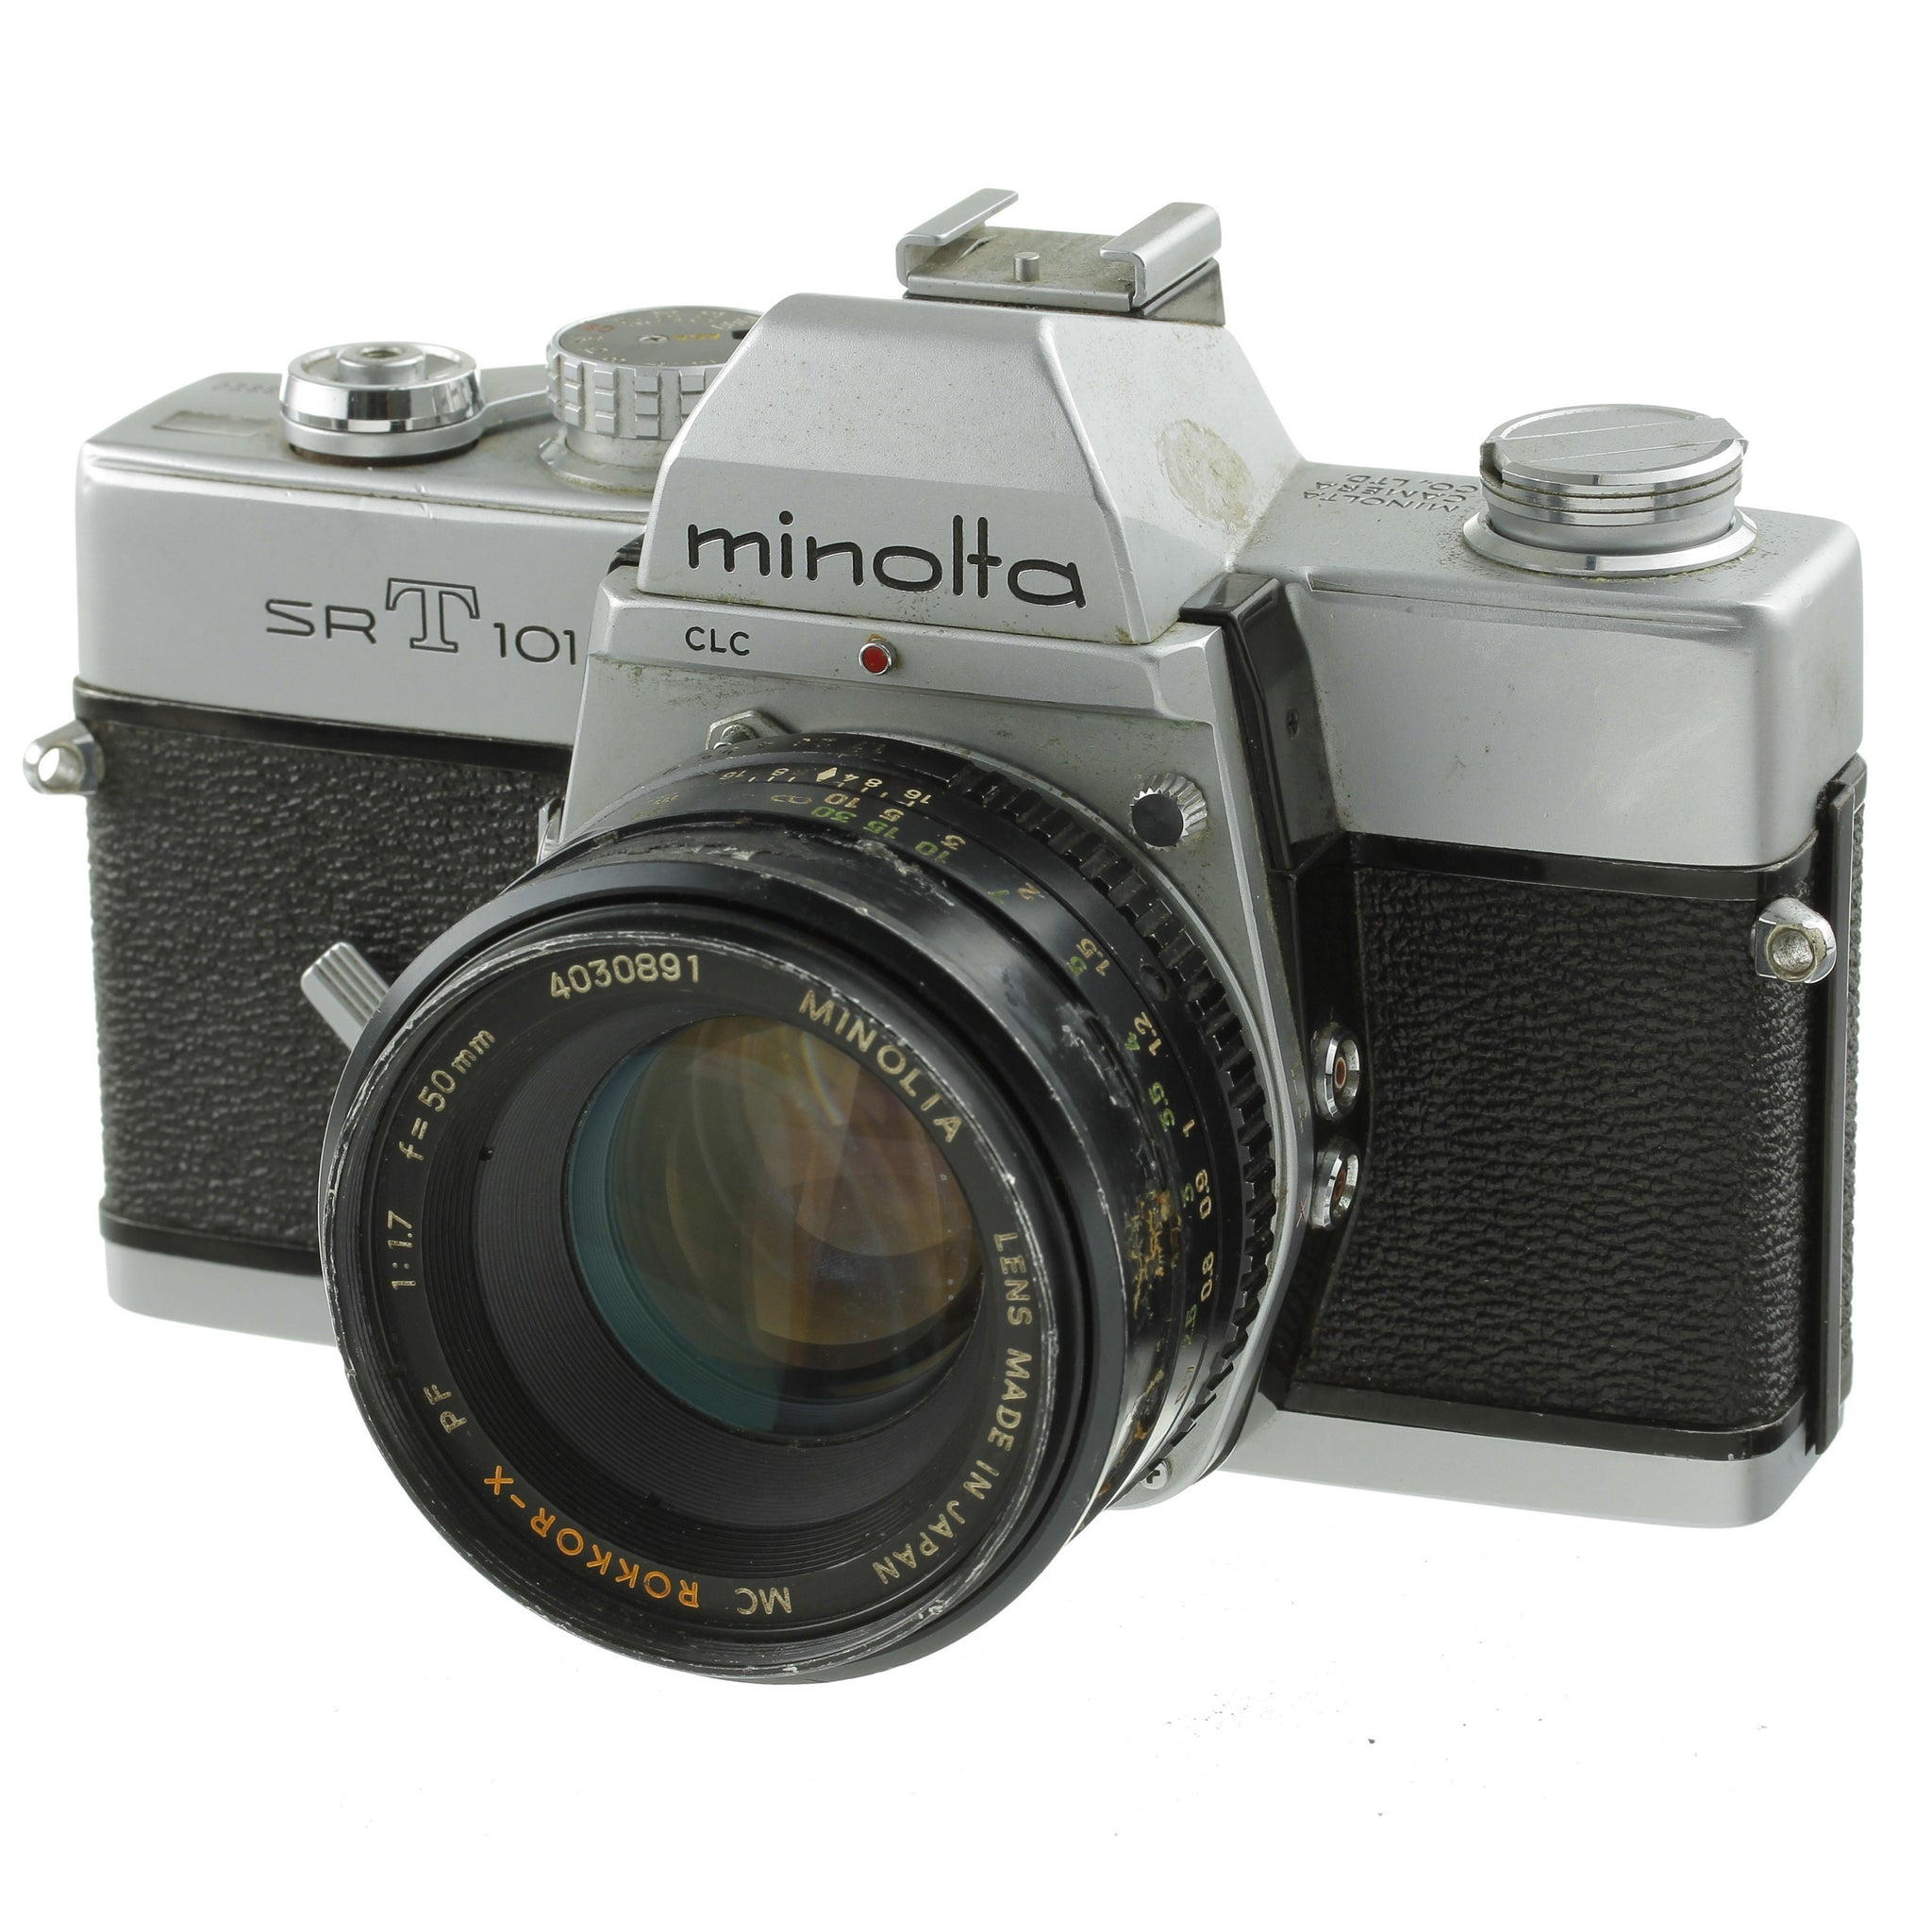 Minolta SRT101 Film Camera with 50mm 1.7 Lens